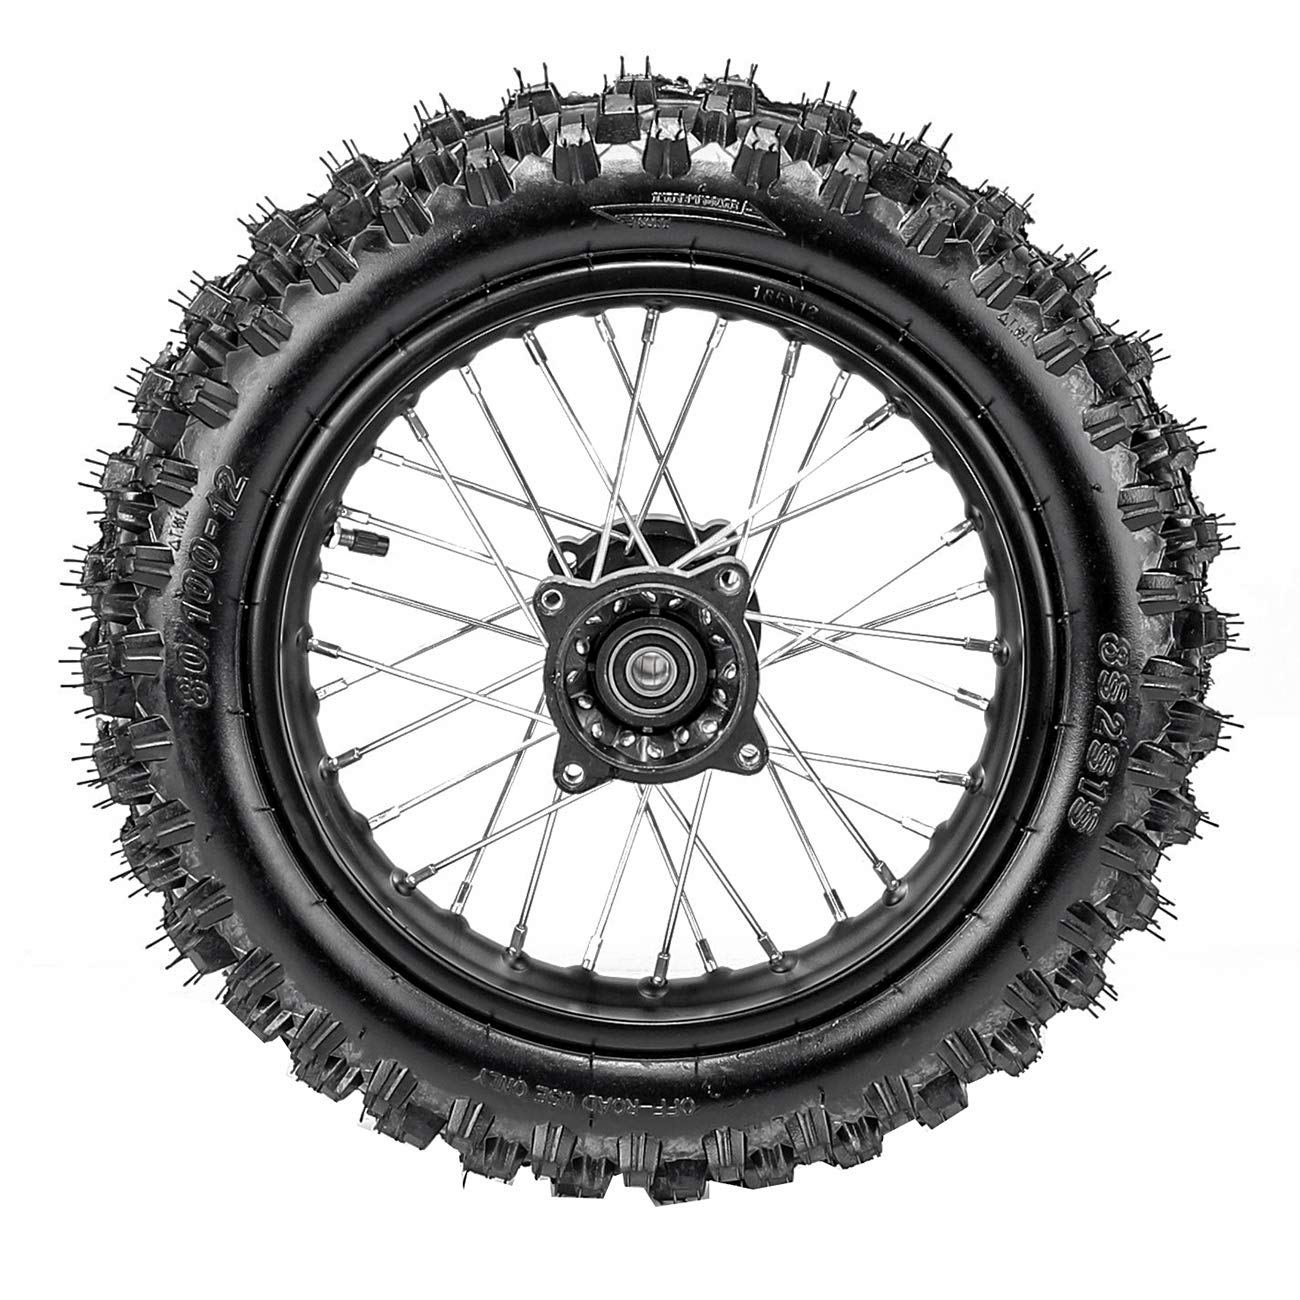 TDPRO 80//100-12 Rear Tire Disc Brake Rim With 15mm Bearing Set for Pit Pro Dirt Bike